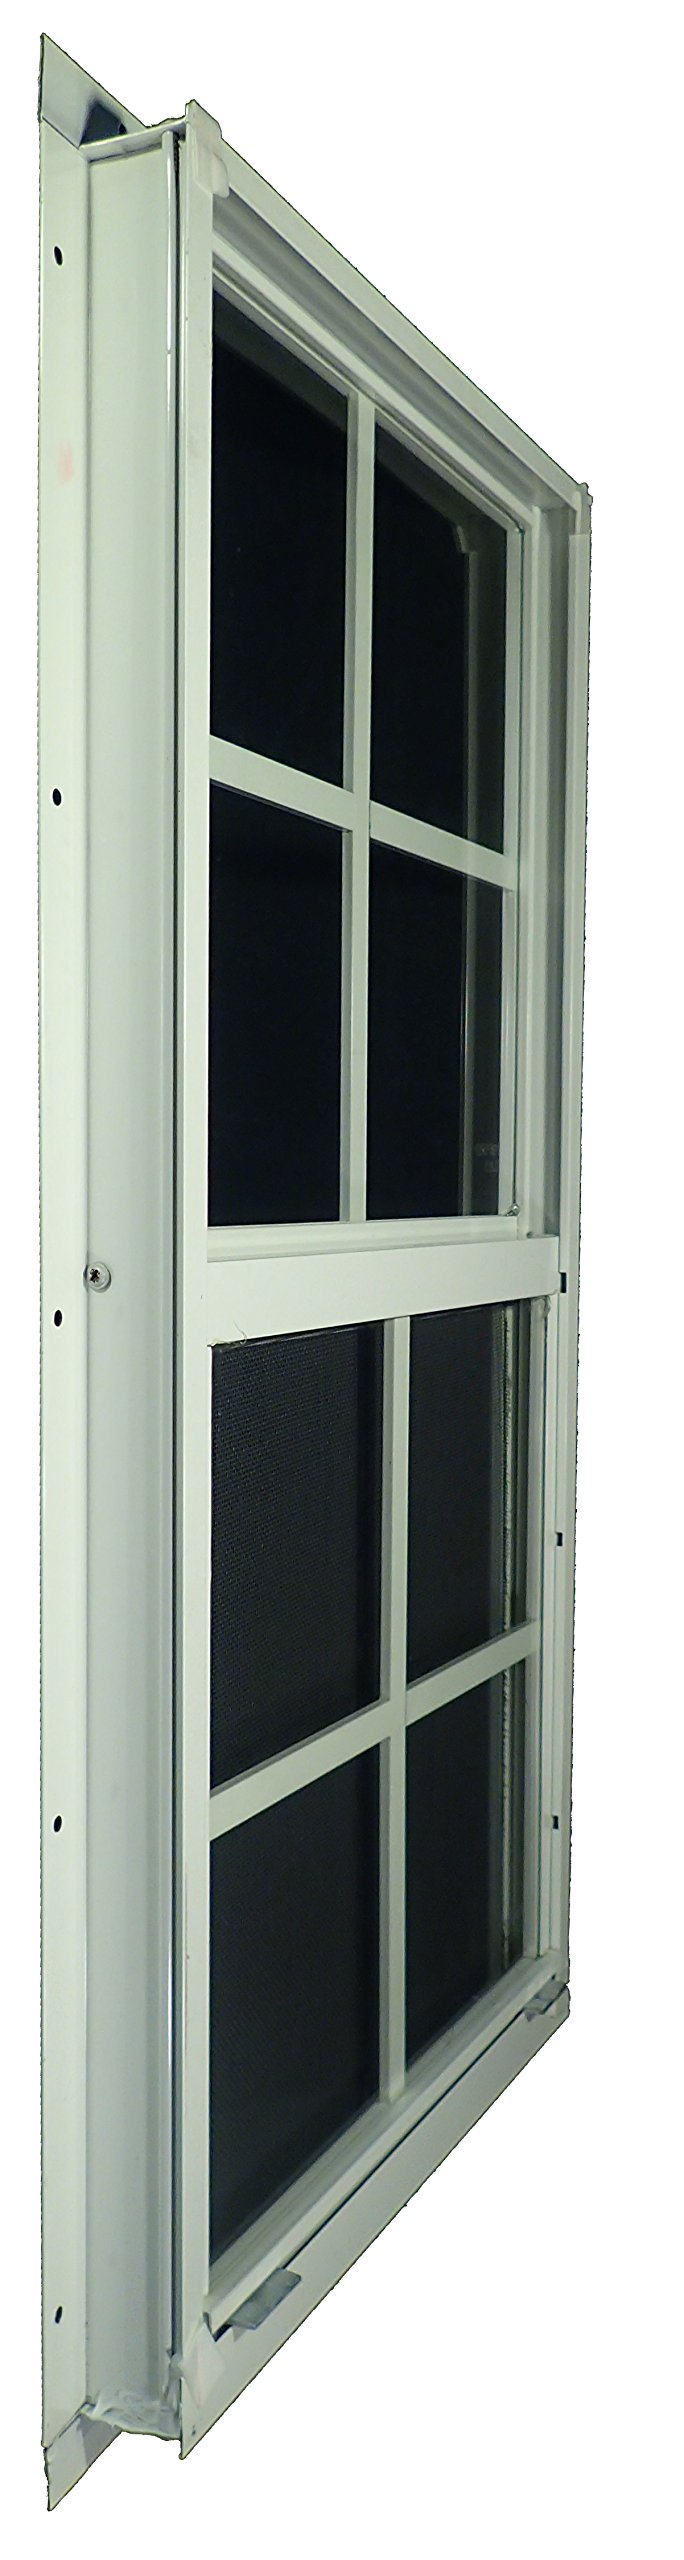 Shed Windows 14'' W x 21'' H - Flush Mount w/ Safety Glass - Playhouse Windows (White) by Outdoor Play and Storage (Image #2)